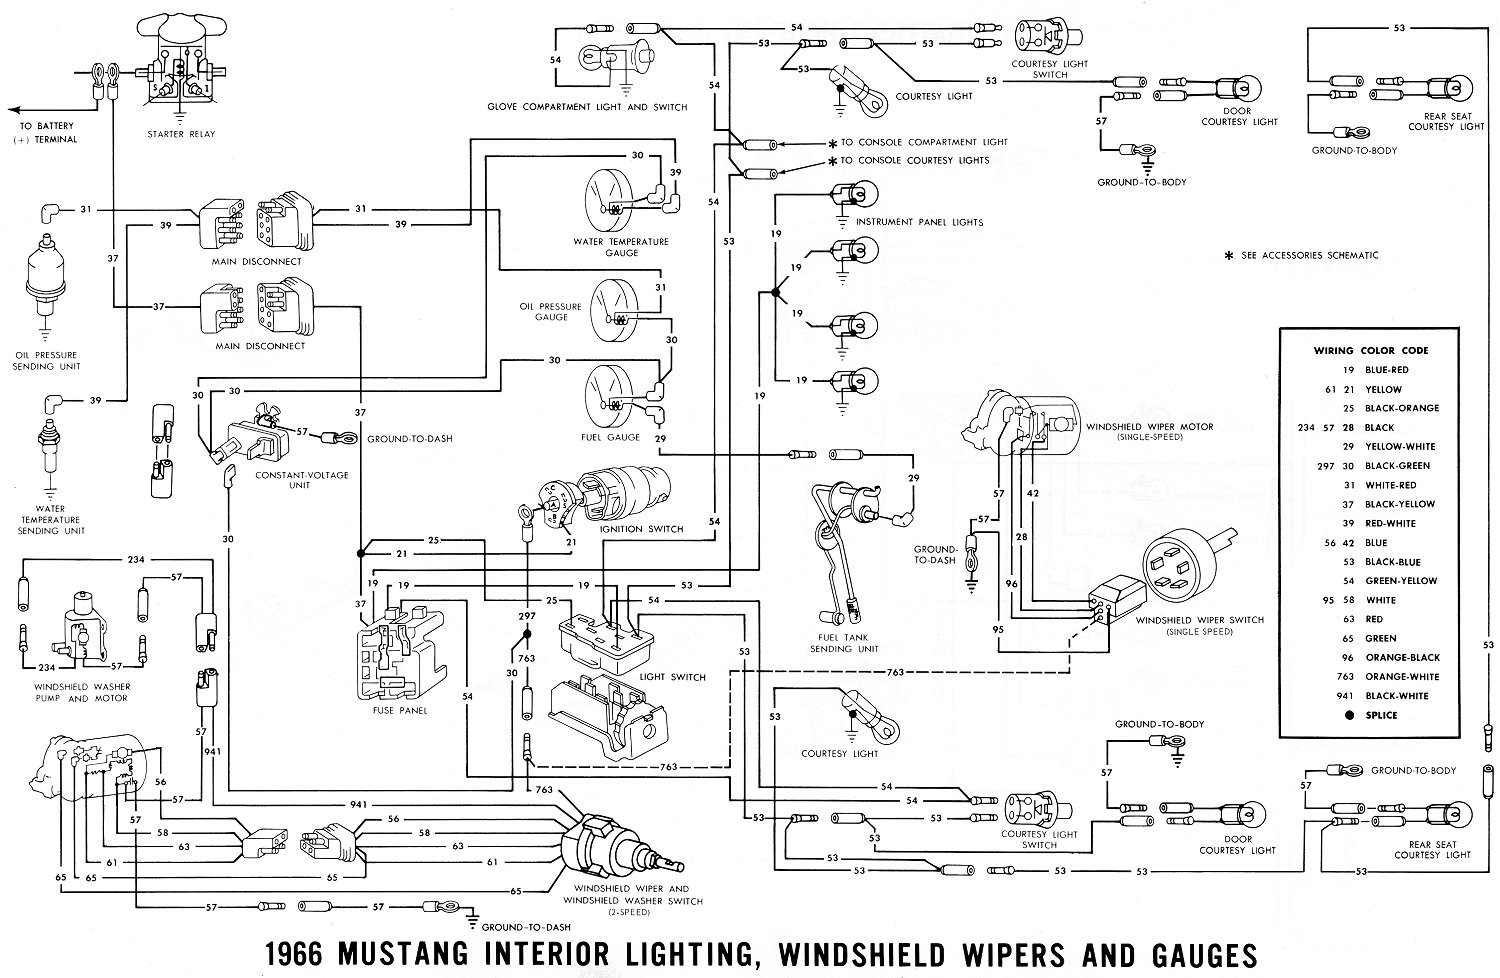 1966 Mustang Instrument Cluster Diagram Wiring Schematic O Gauge Diagrams Average Joe Restoration 66